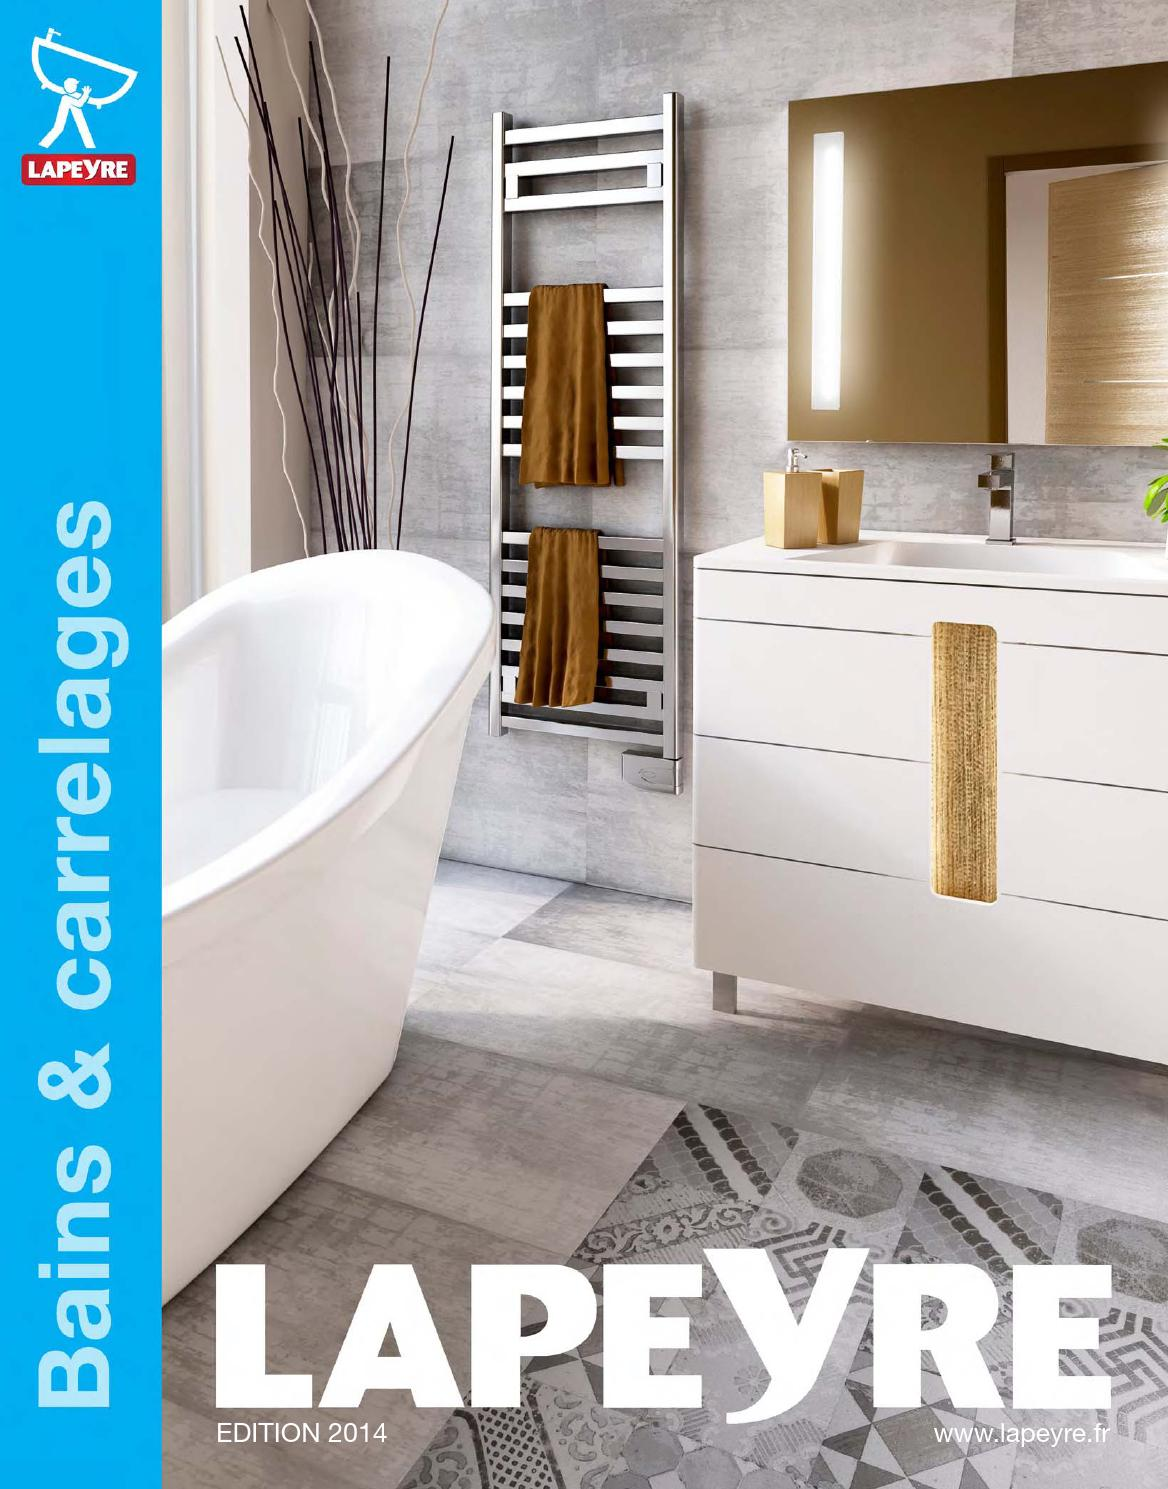 Catalogue Lapeyre Bains Carrelages 2014 By Joe Monroe Issuu